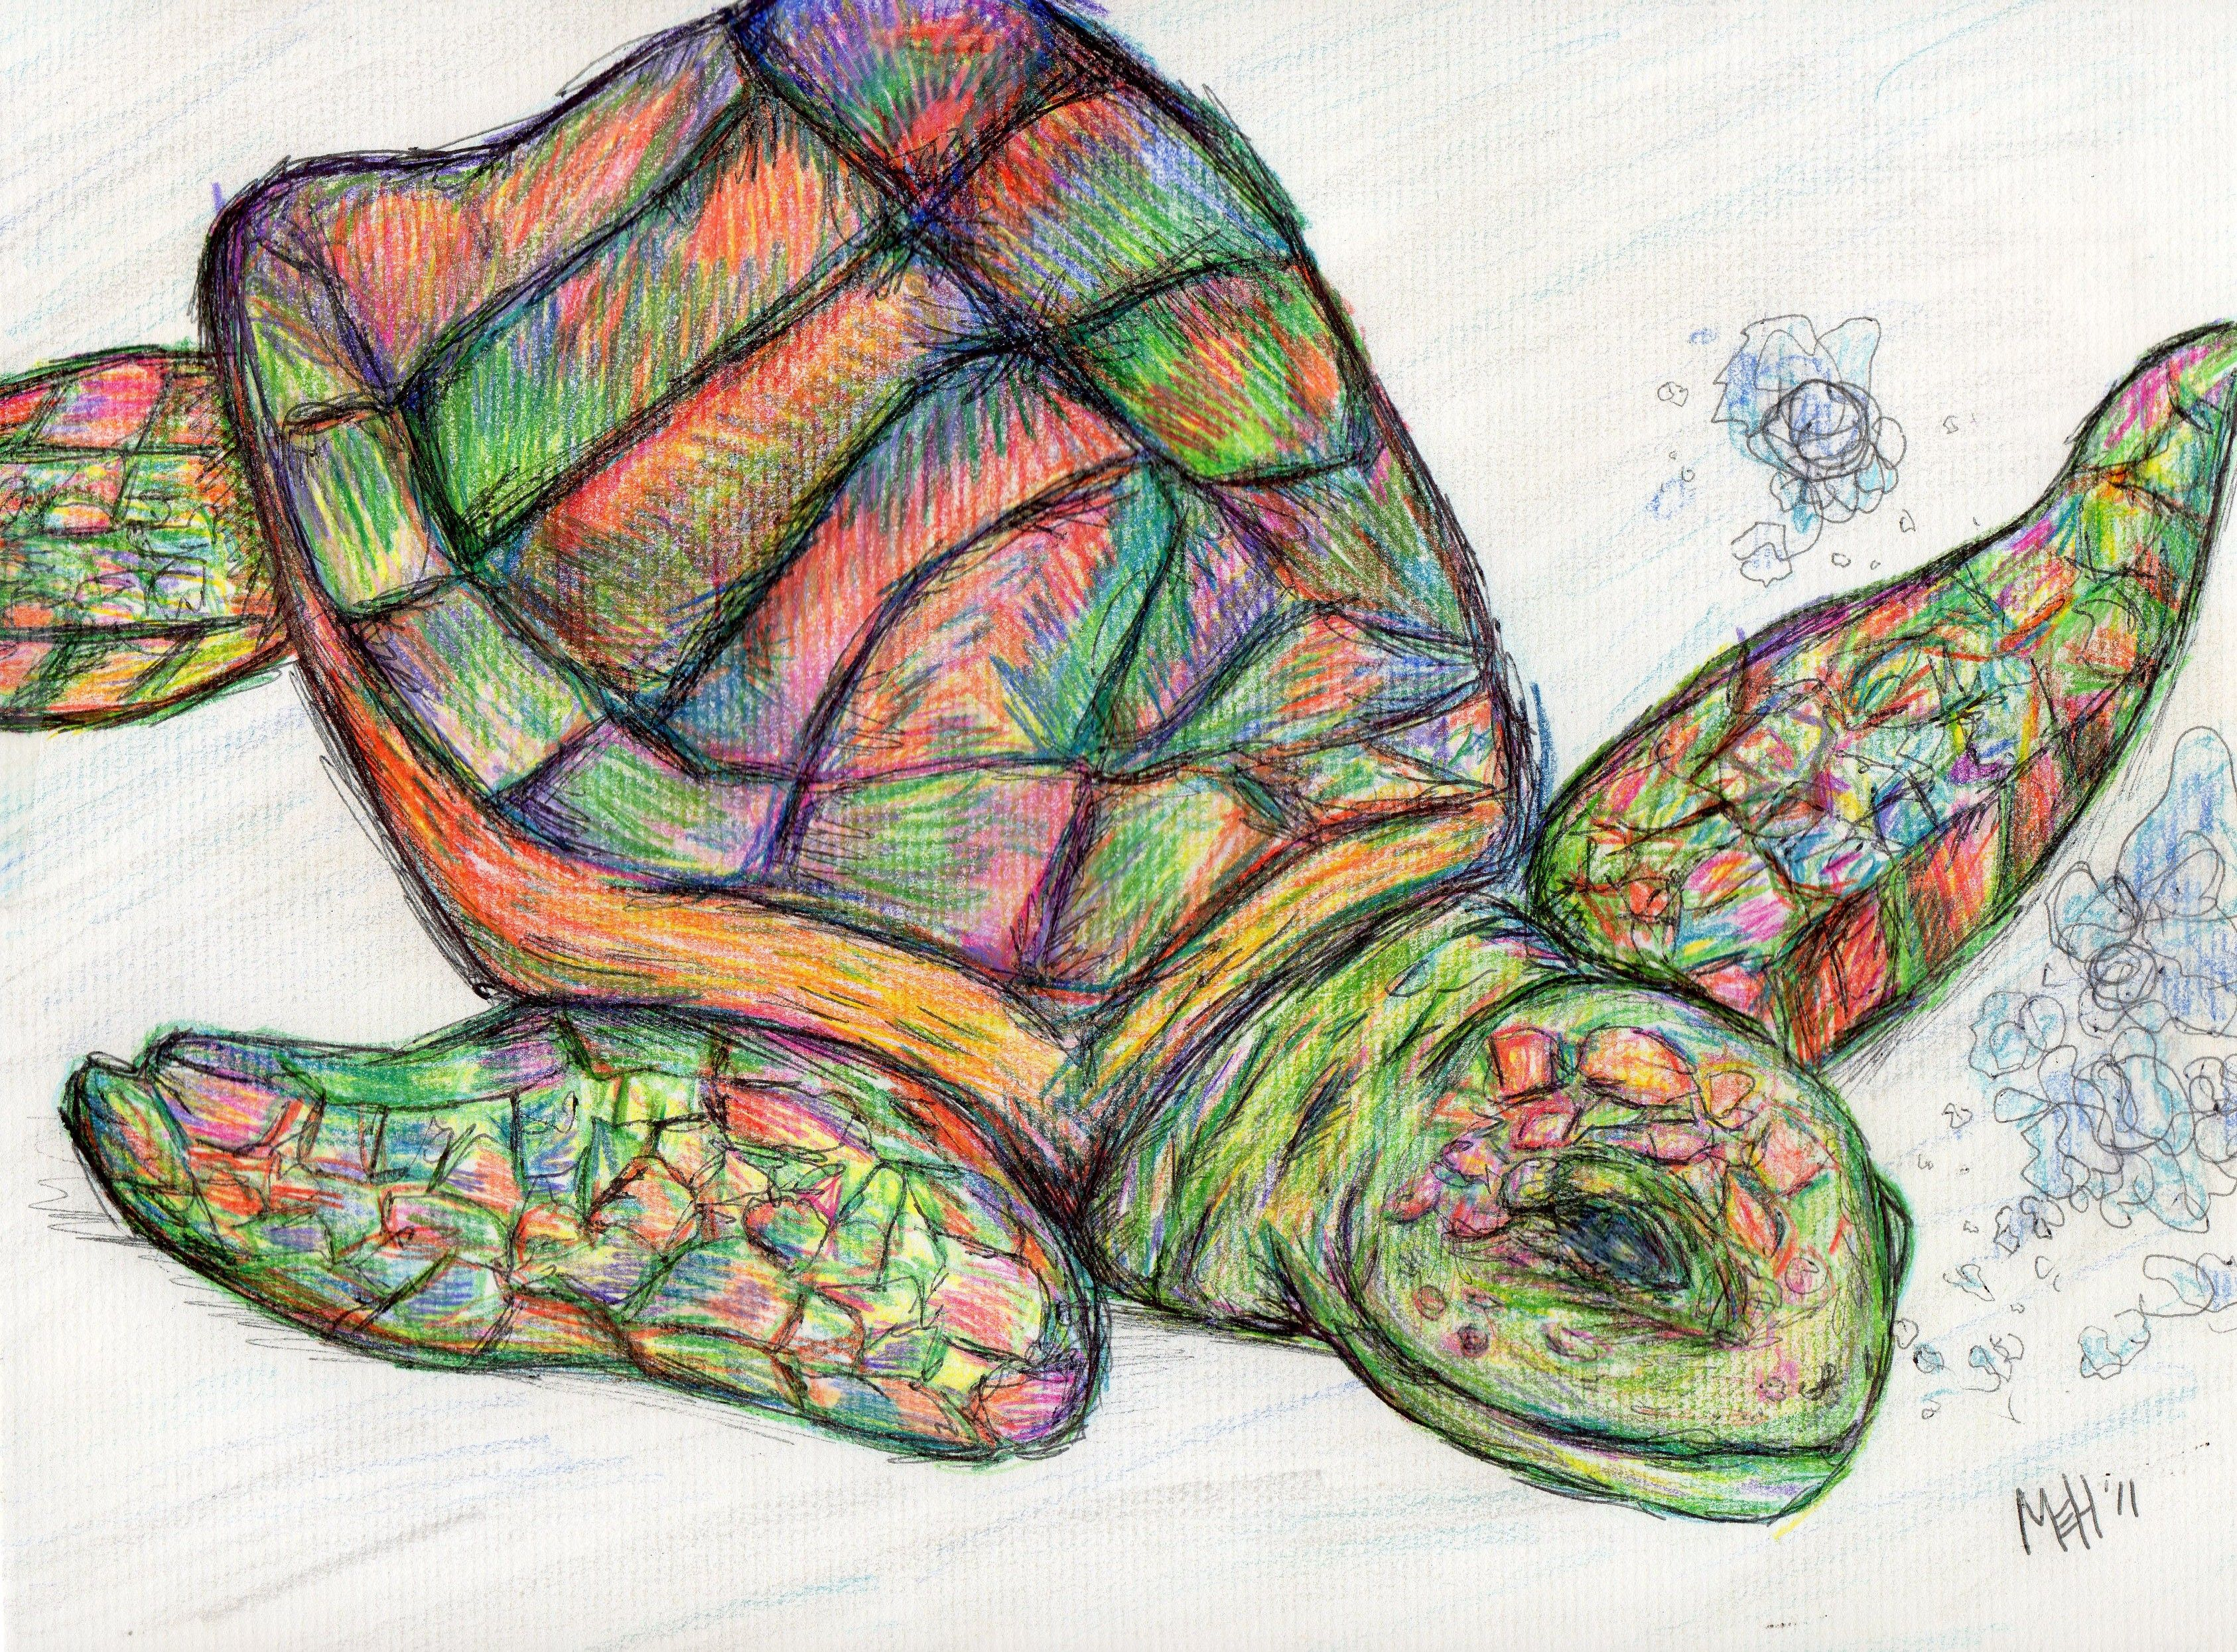 Sea turtle colored pencil sketch coloredpencil art animals colors illustration mgnhgndesigns